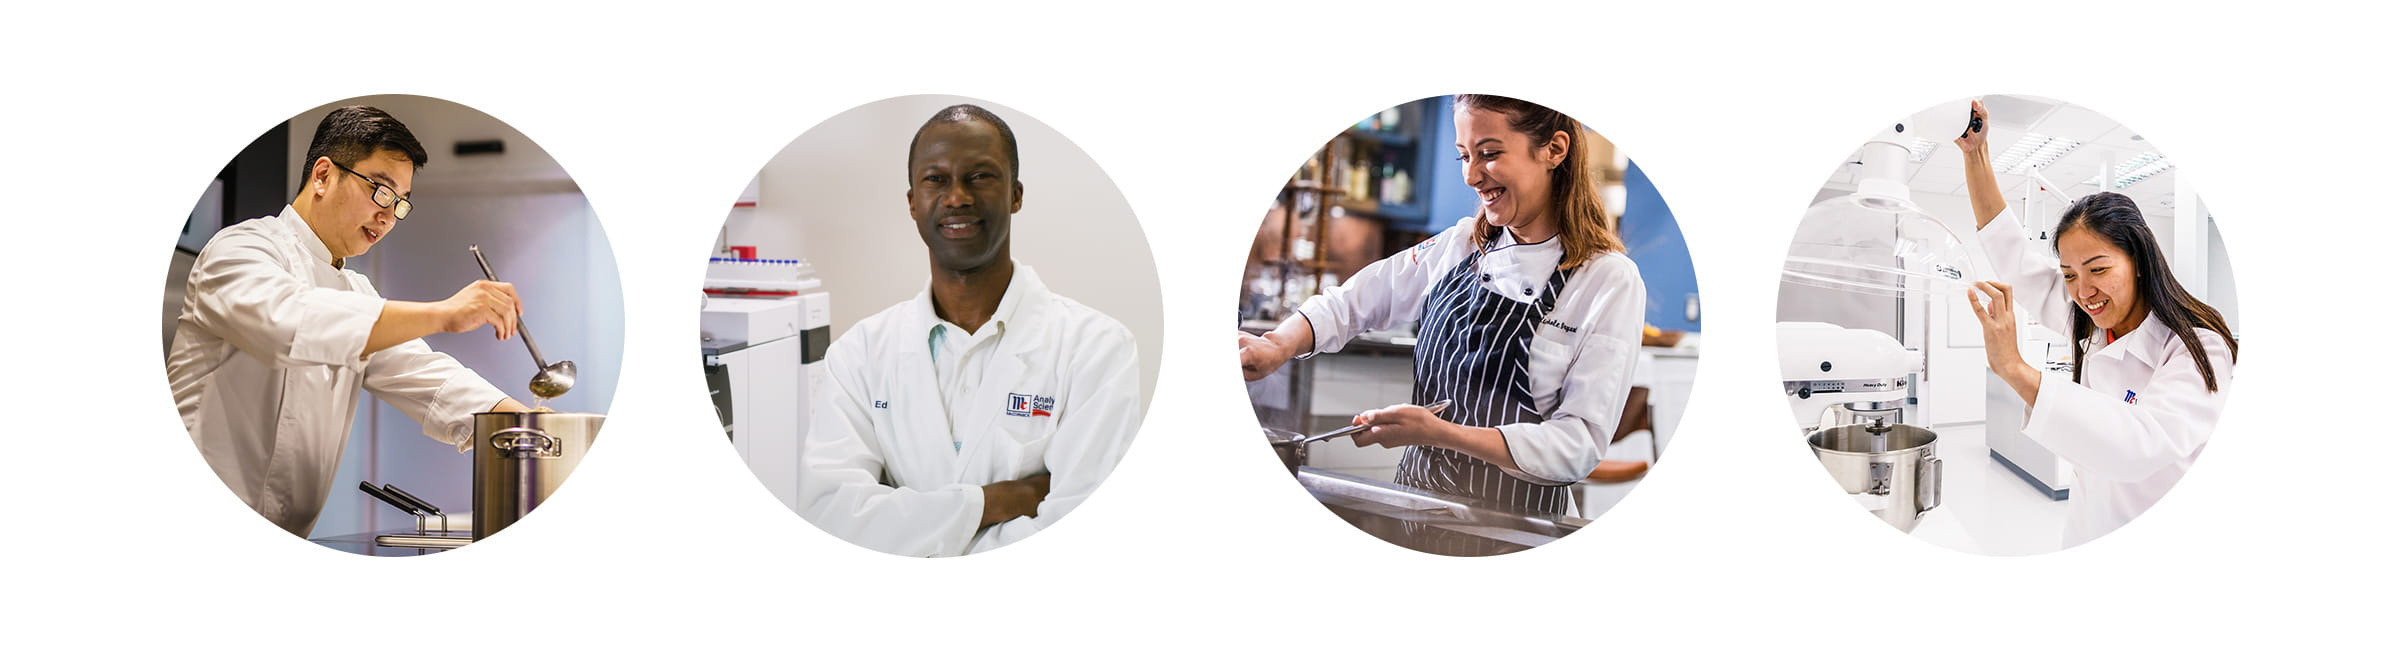 employees-research-cooking